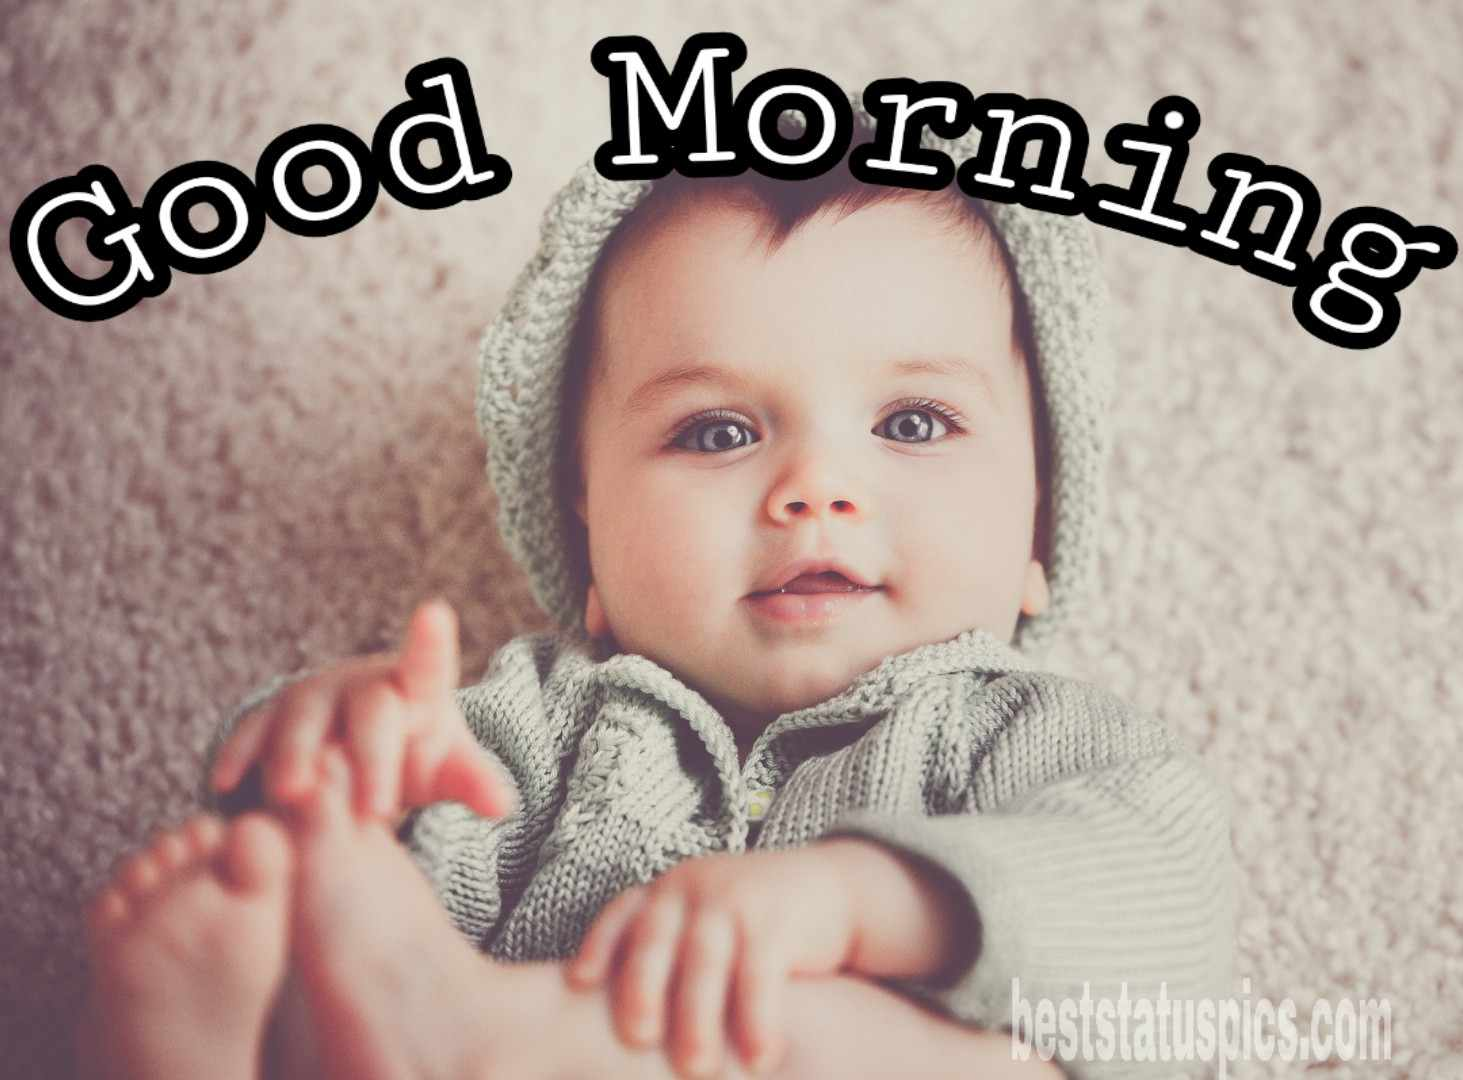 Good morning baby images for whatsapp dp